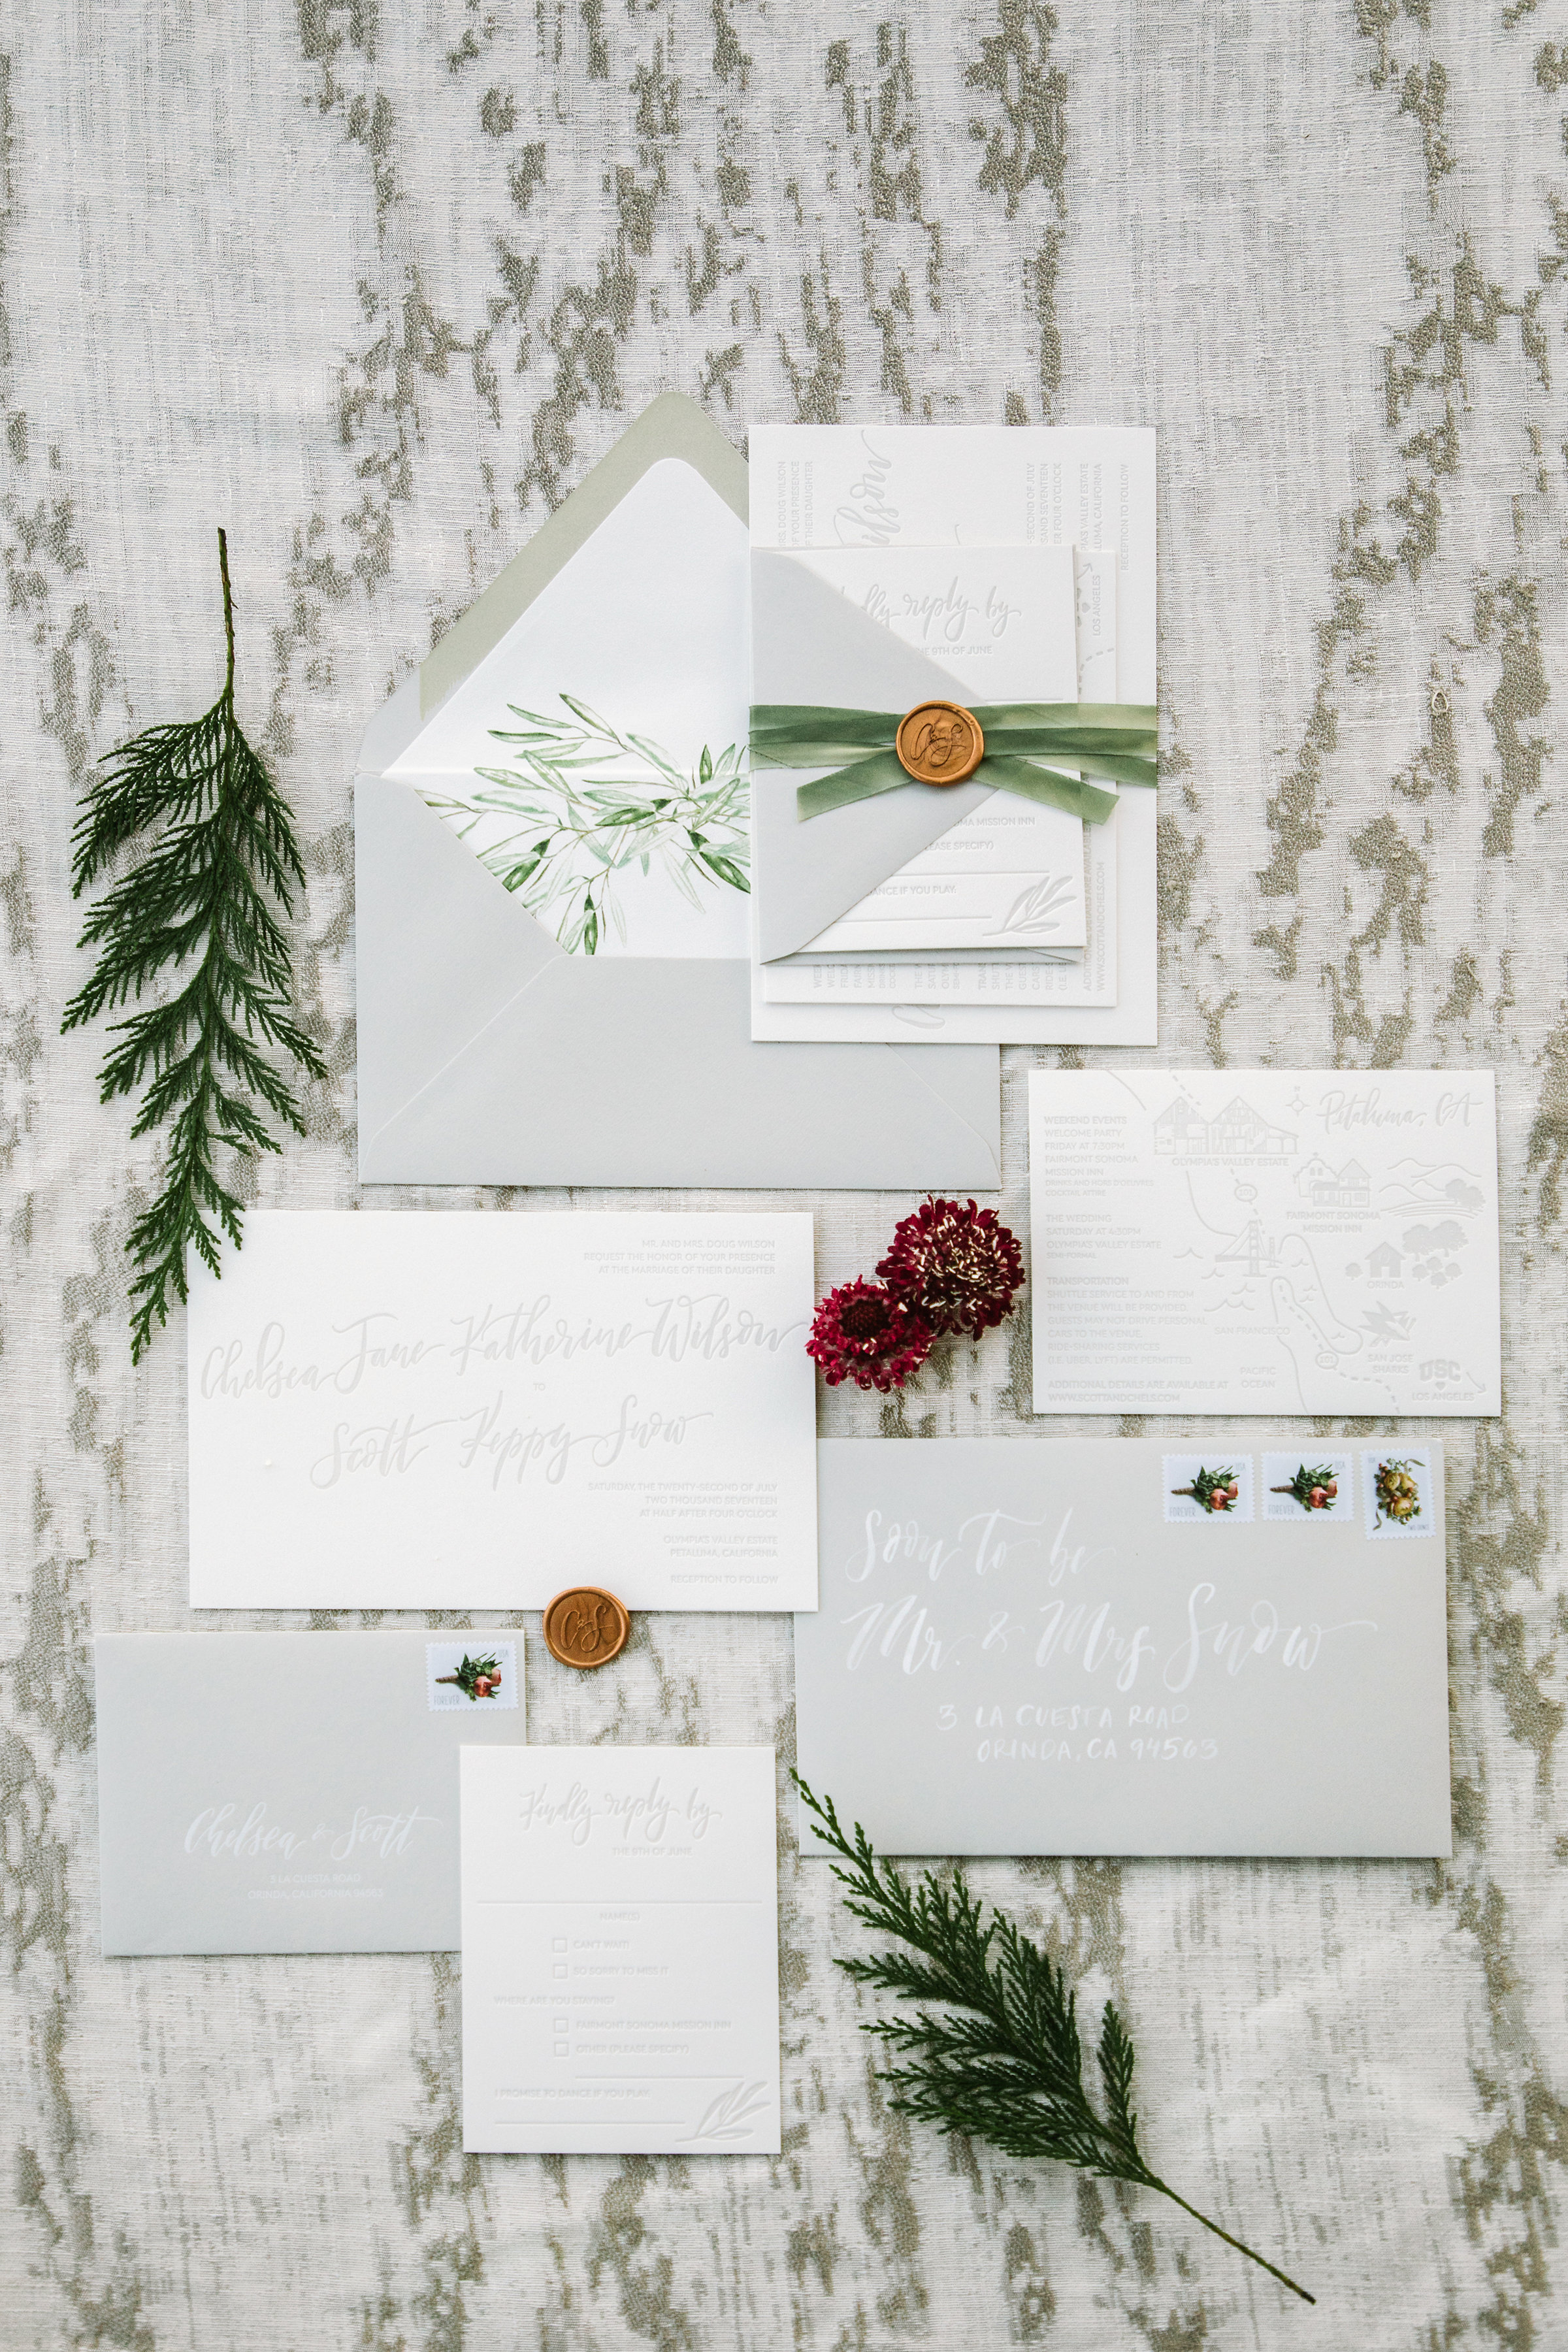 Botanical invitation suite with flowers by Venn Floral at Olympia's Valley Estate photographed by The Edges.